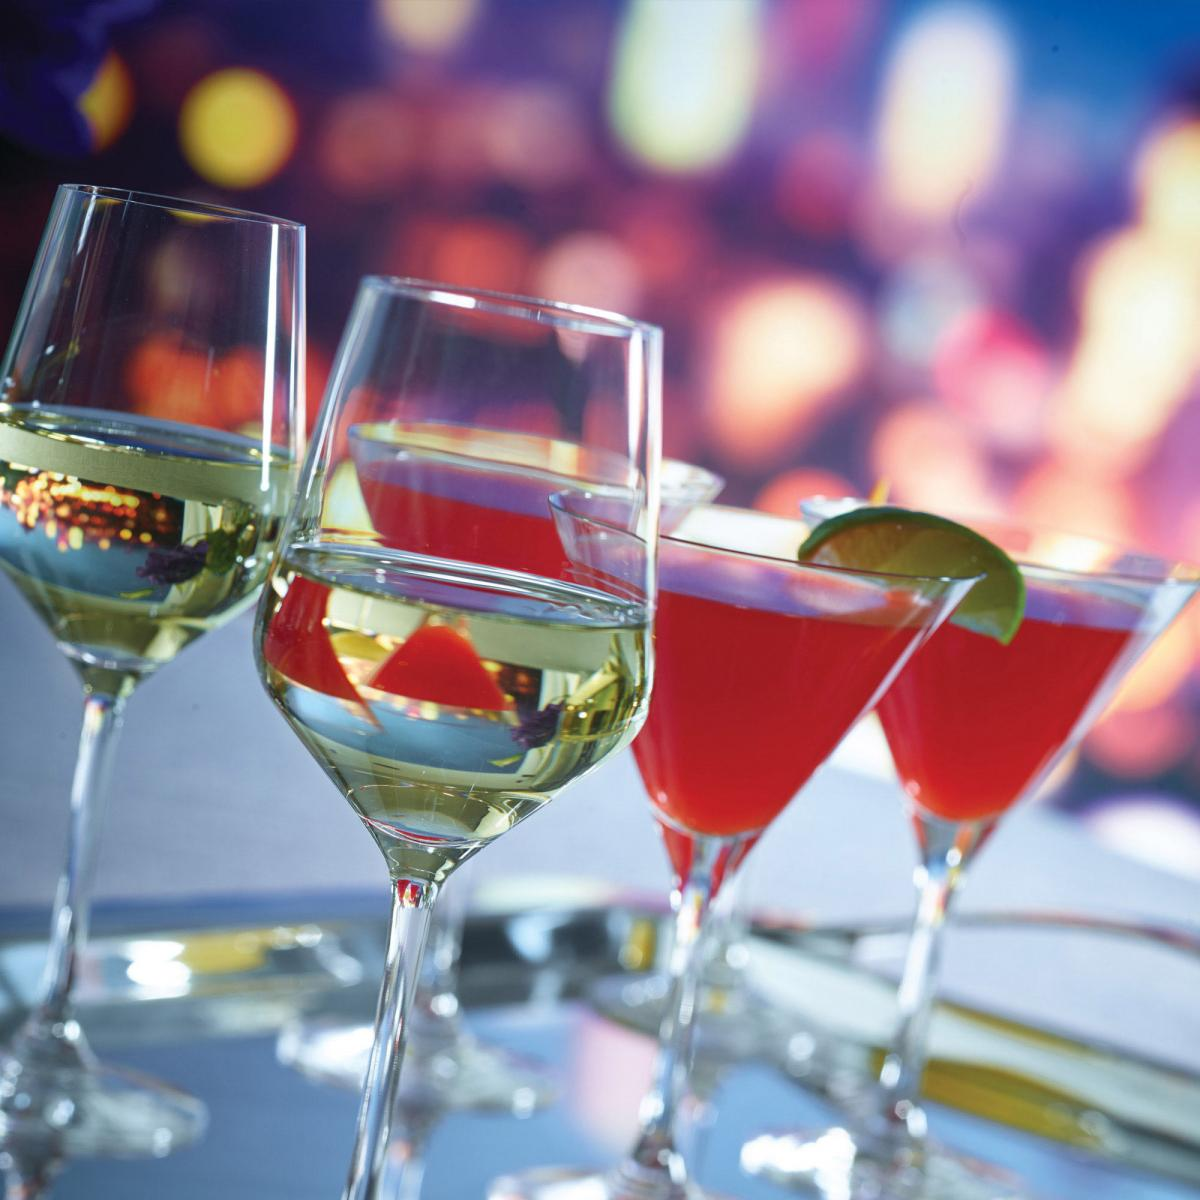 Beverage and Drink Trends in Restaurants 2015